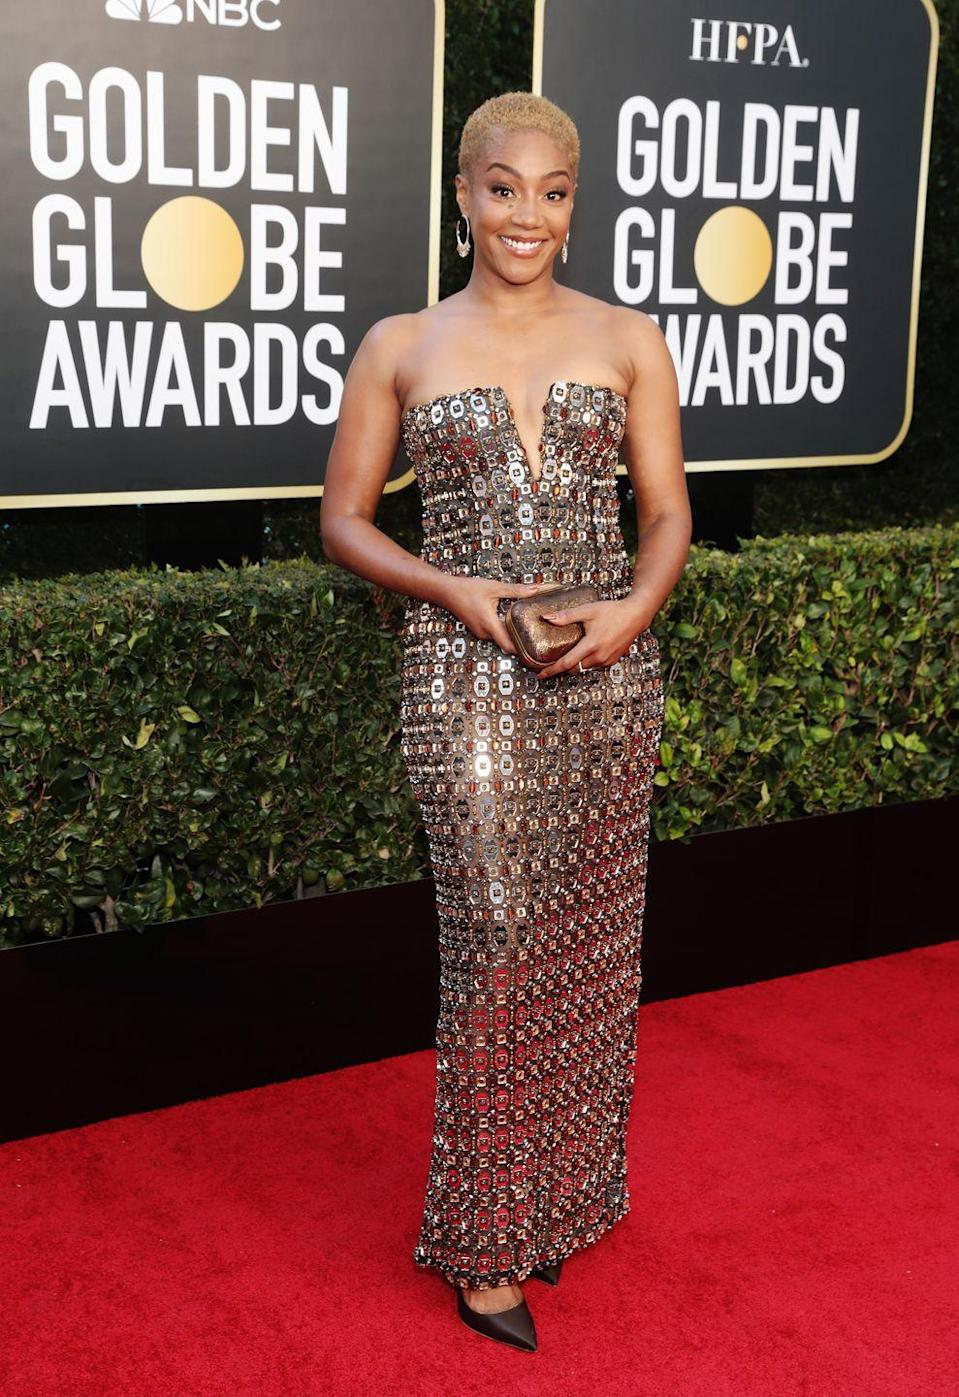 <p><strong>What: </strong>Alberta Ferretti </p><p><strong>Why:</strong> Haddish is bringing chainmail chicness in a custom strapless brown and silver embellished gown. It's somewhere between Pierre Cardin in the '60s and the knights of the round table and she looks fittingly strong and beautiful. </p>